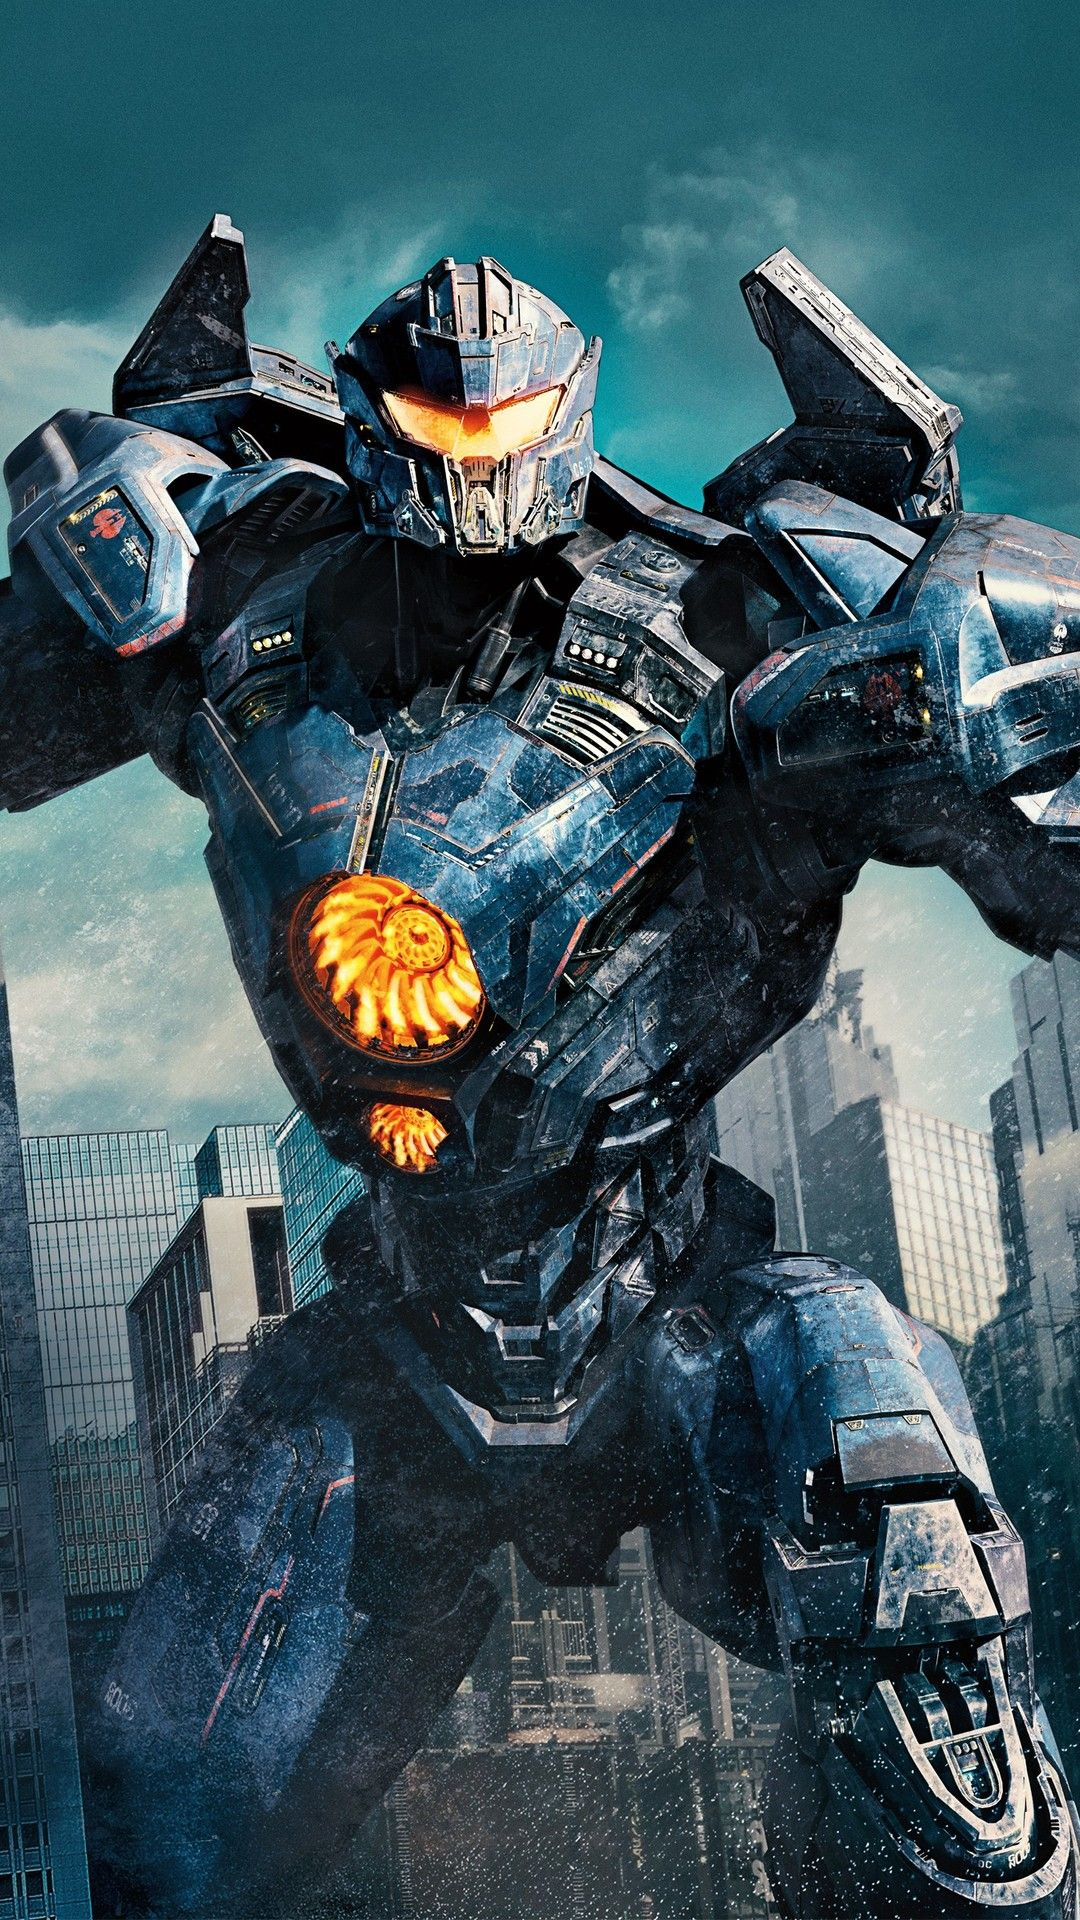 Pacific Rim Uprising Gipsy Avenger Wallpaper 1080x1920 ... Pacific Rim Jaeger Gypsy Danger Wallpaper